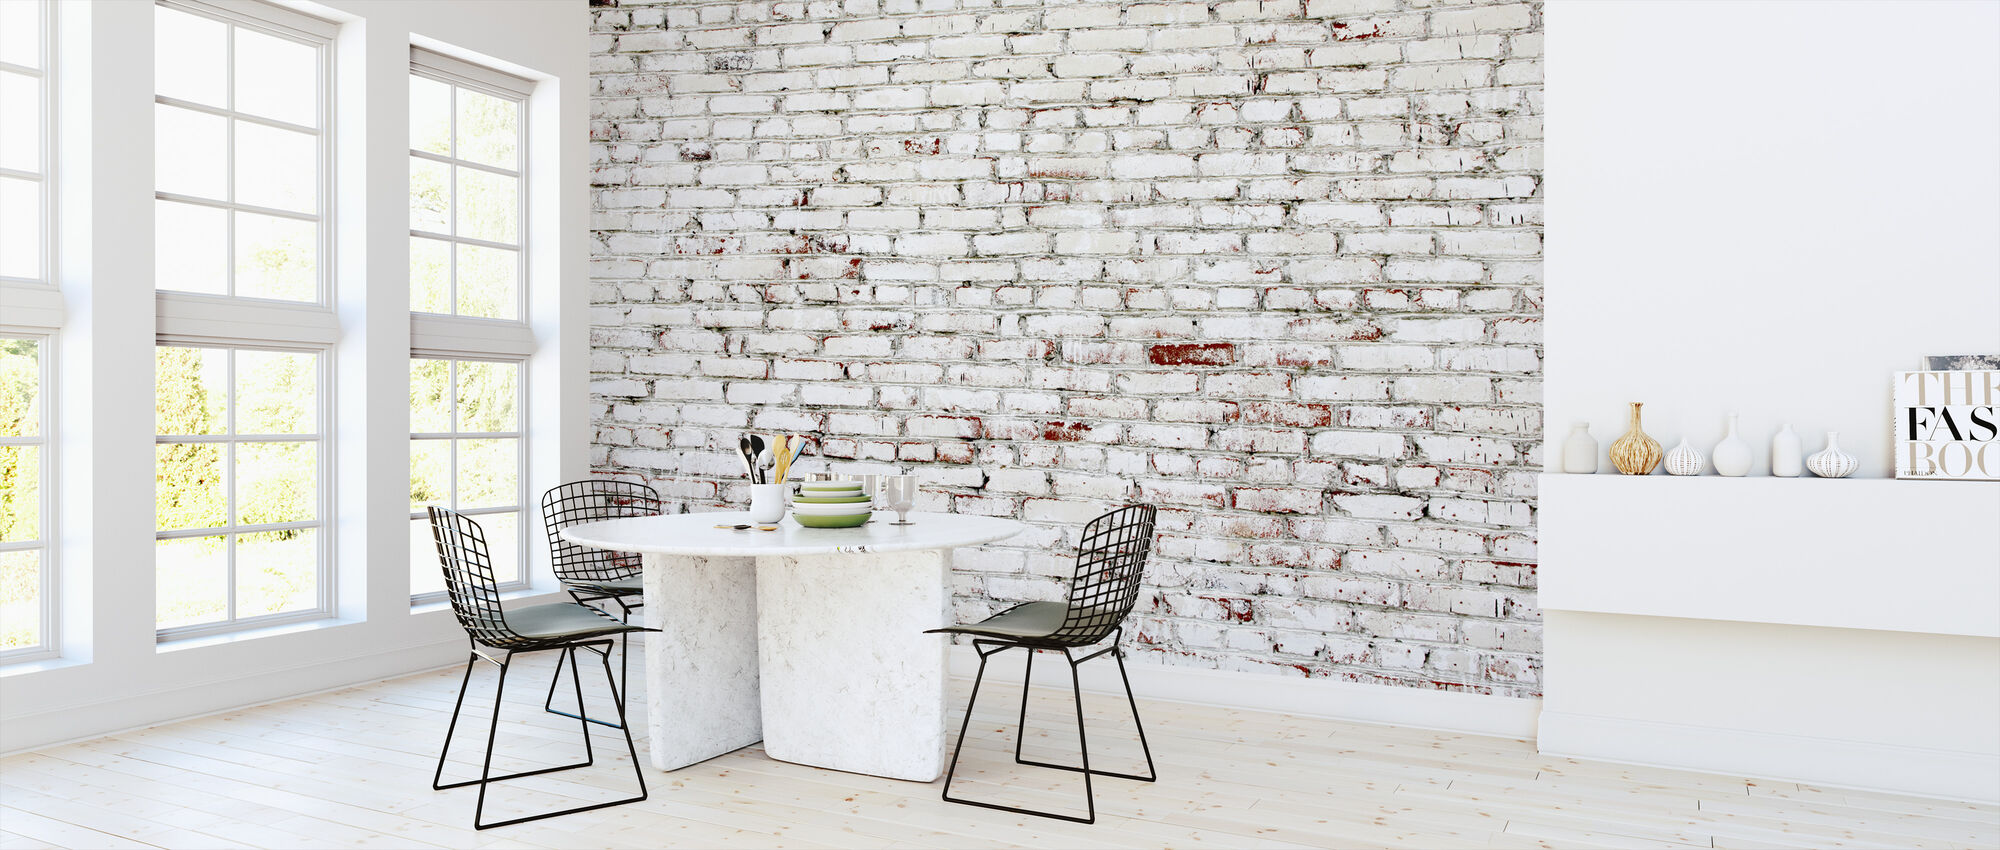 Old Brick Wall with white and red bricks - Wallpaper - Kitchen